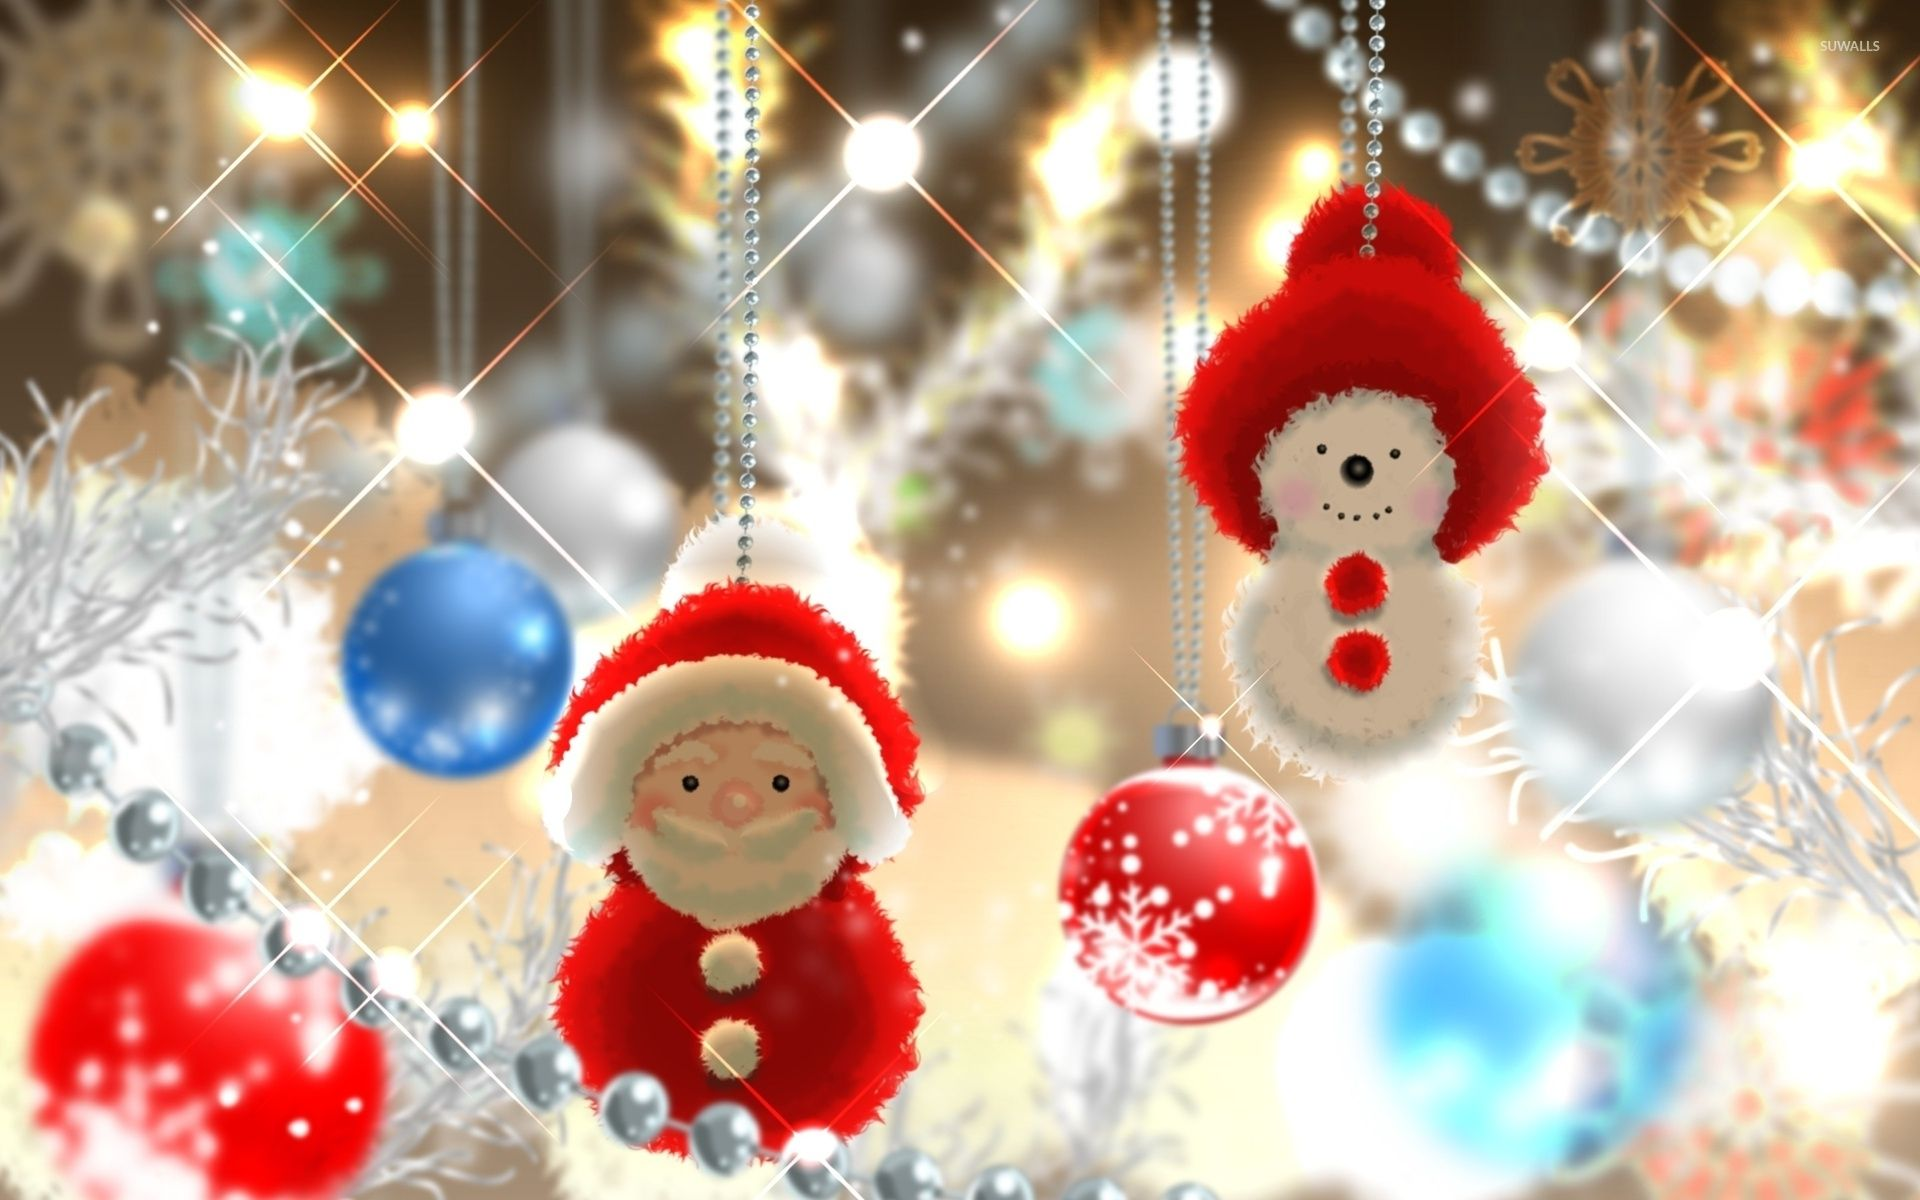 1920x1200 Cute Santa and snowman in the Christmas tree wallpaper - Holiday ...